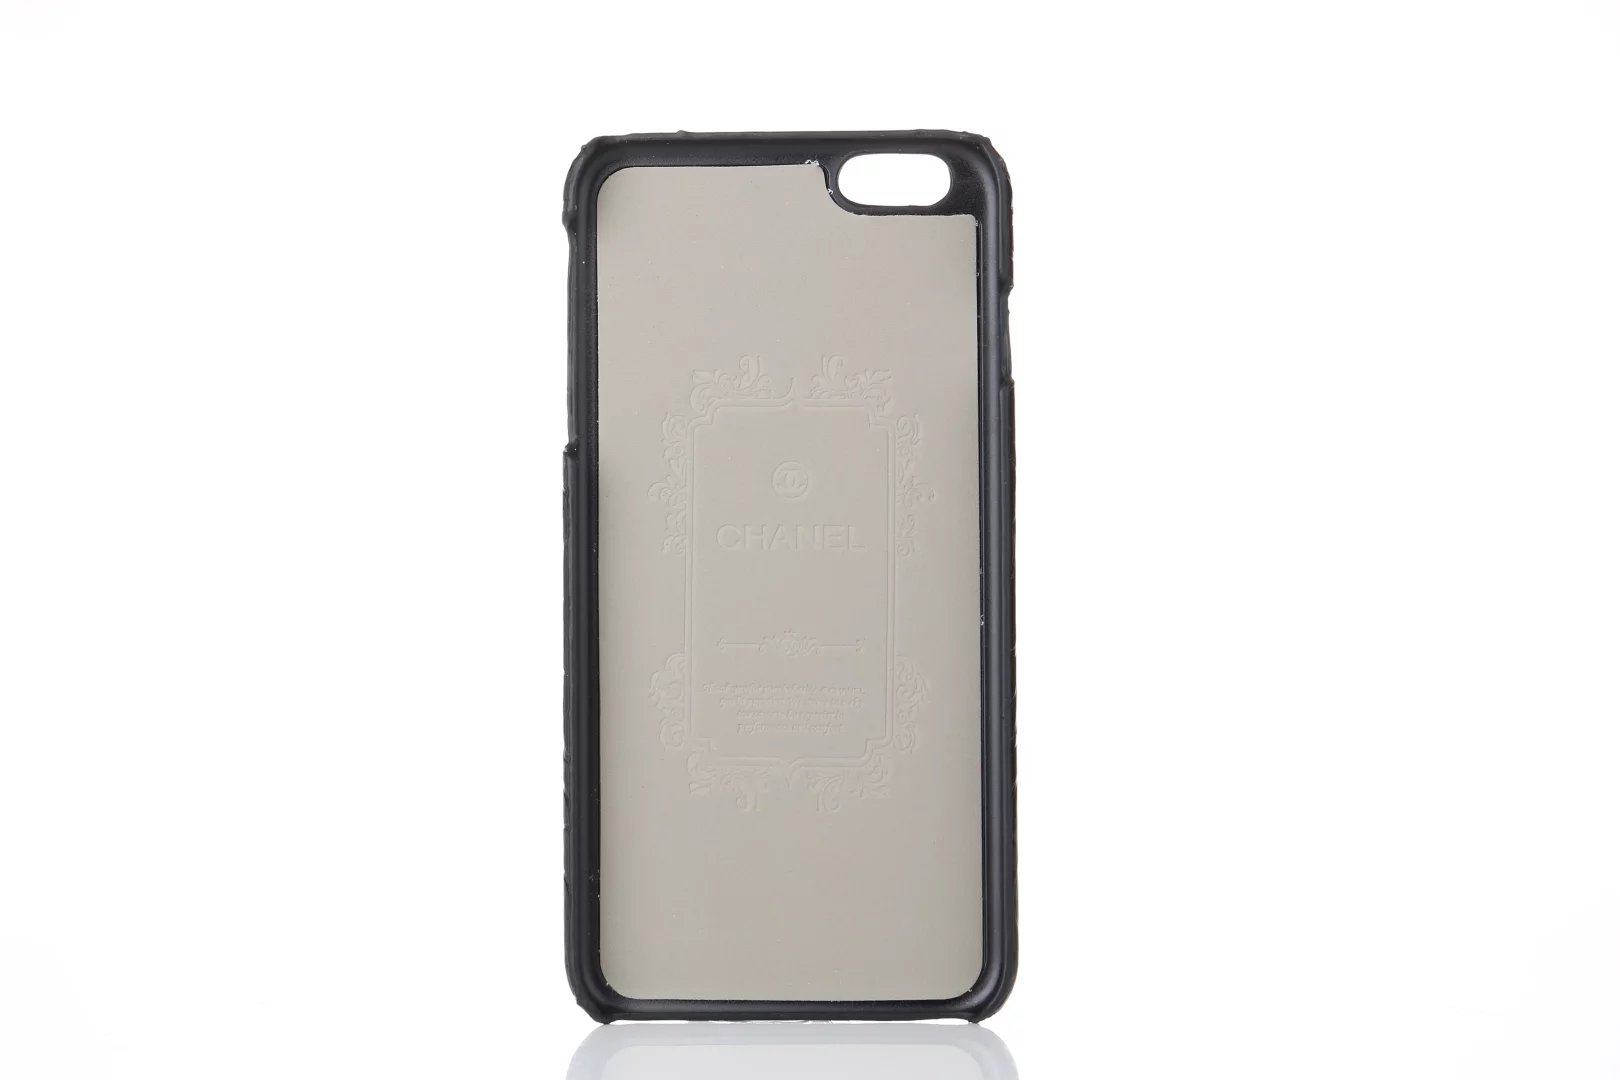 where to buy iphone 6 cases iphone 6 leather cover fashion iphone6 case phone casings iphone covers and cases india custom iphone covers apple iphone case 6 phone cover custom more phone cases